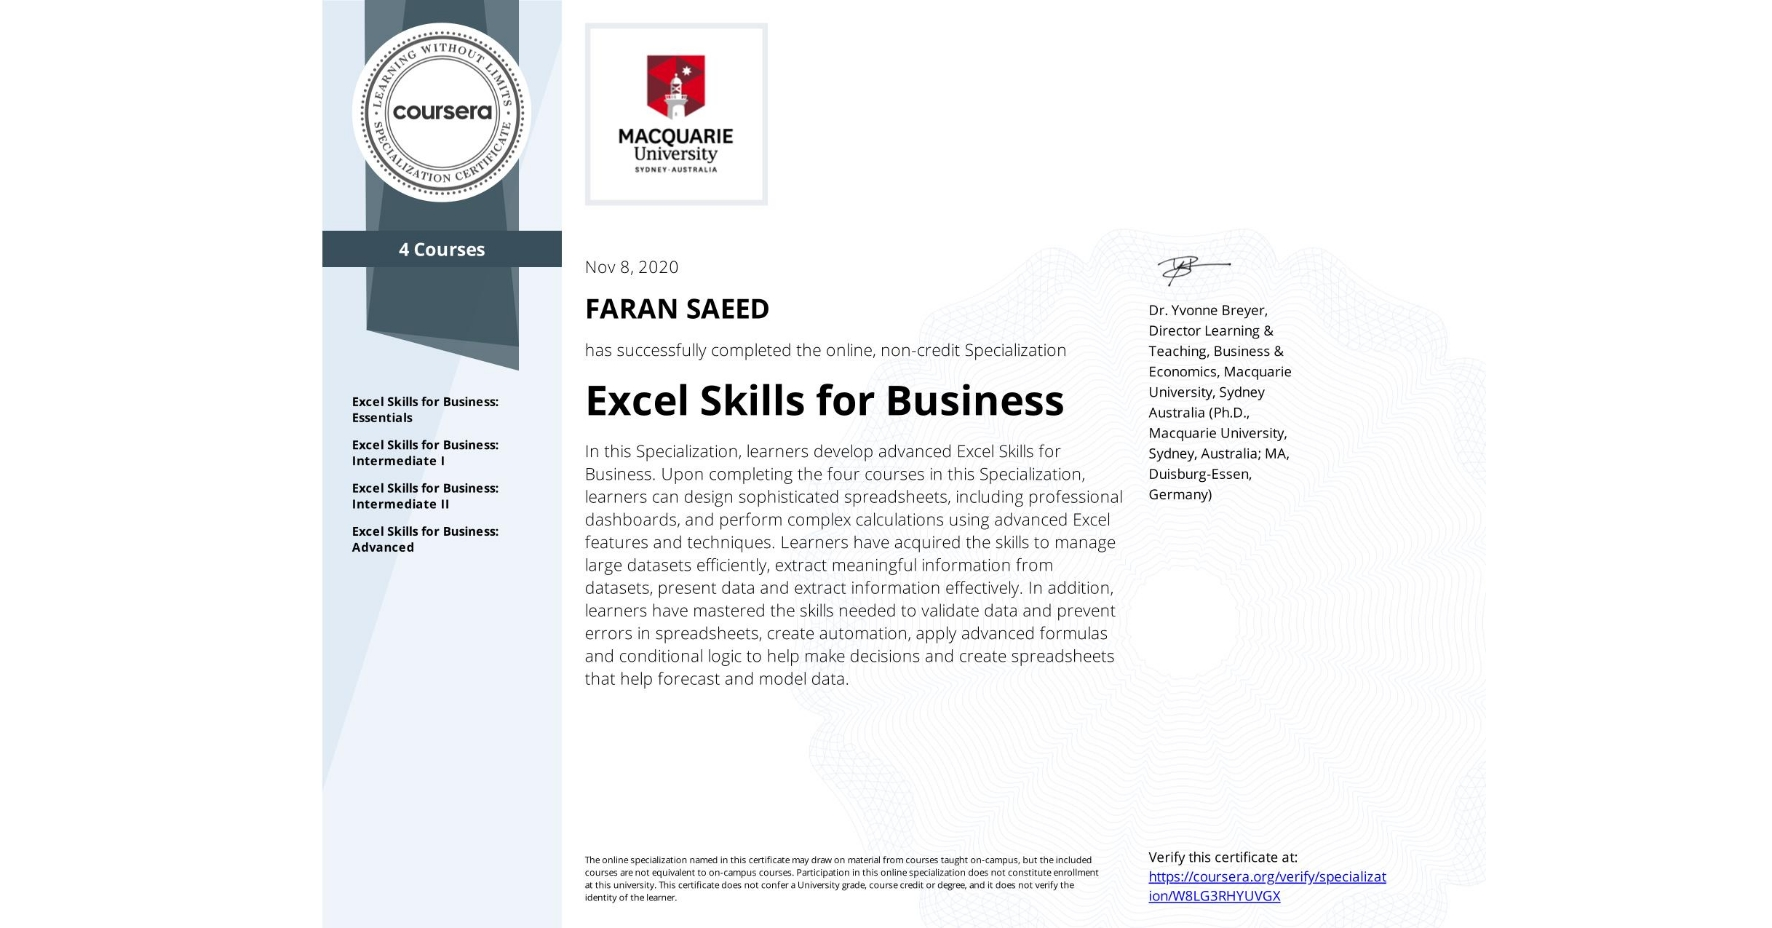 View certificate for FARAN SAEED, Excel Skills for Business, offered through Coursera. In this Specialization, learners develop advanced Excel Skills for Business.  Upon completing the four courses in this Specialization, learners can design sophisticated spreadsheets, including professional dashboards, and perform complex calculations using advanced Excel features and techniques. Learners have acquired the skills to manage large datasets efficiently, extract meaningful information from datasets, present data and extract information effectively. In addition, learners have mastered the skills needed to validate data and prevent errors in spreadsheets, create automation, apply advanced formulas and conditional logic to help make decisions and create spreadsheets that help forecast and model data.